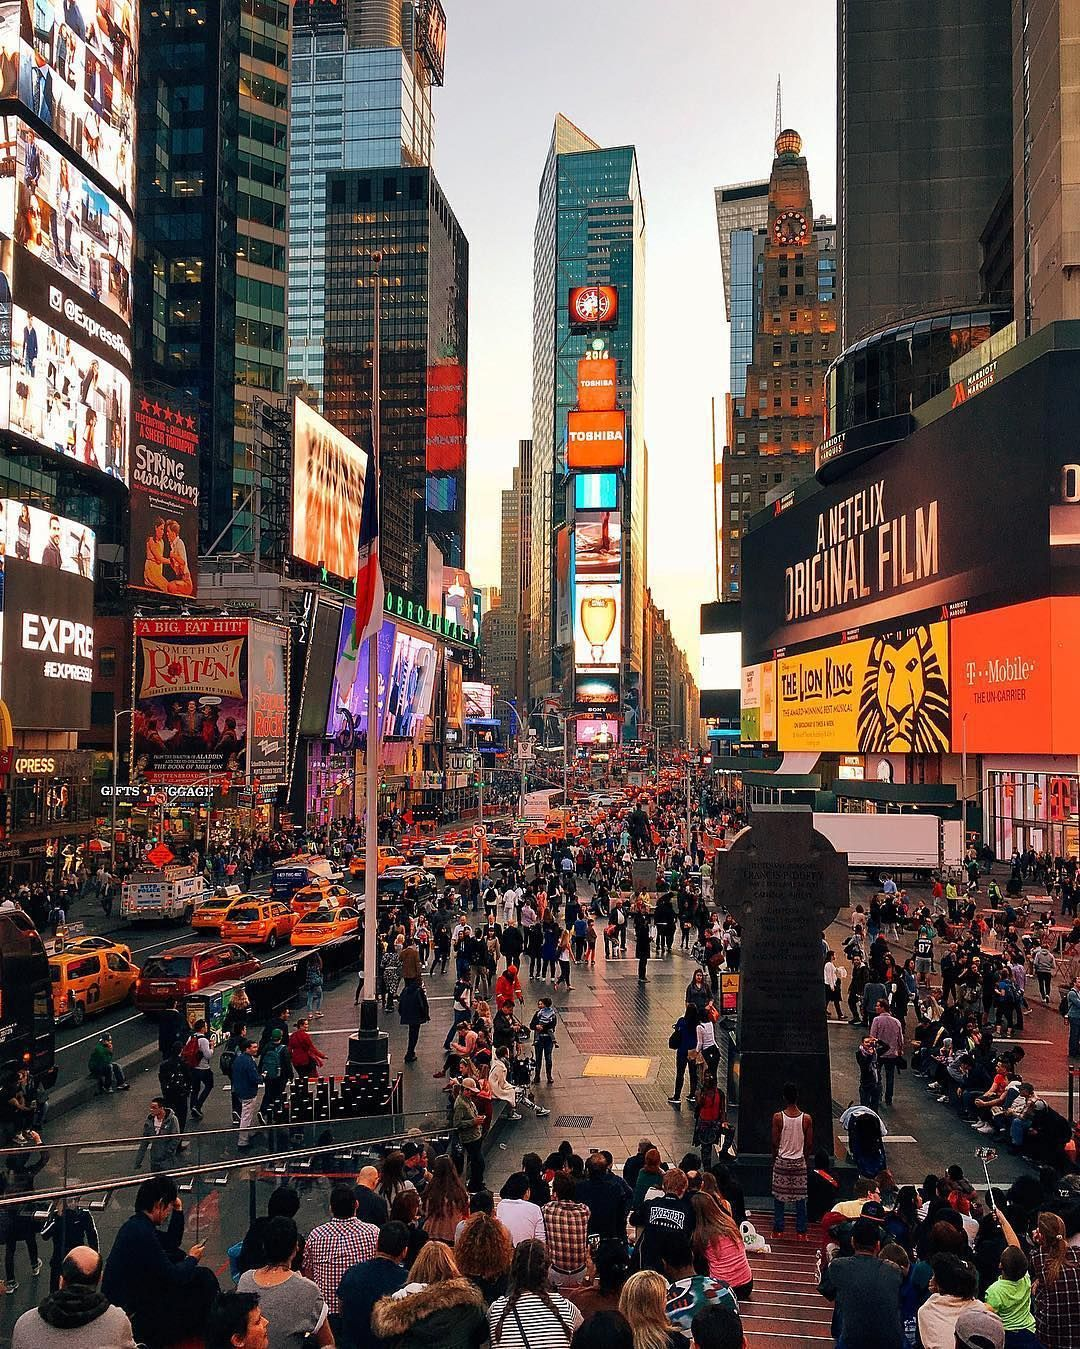 An Amazing Shot Of Times Square! #travel #travelling